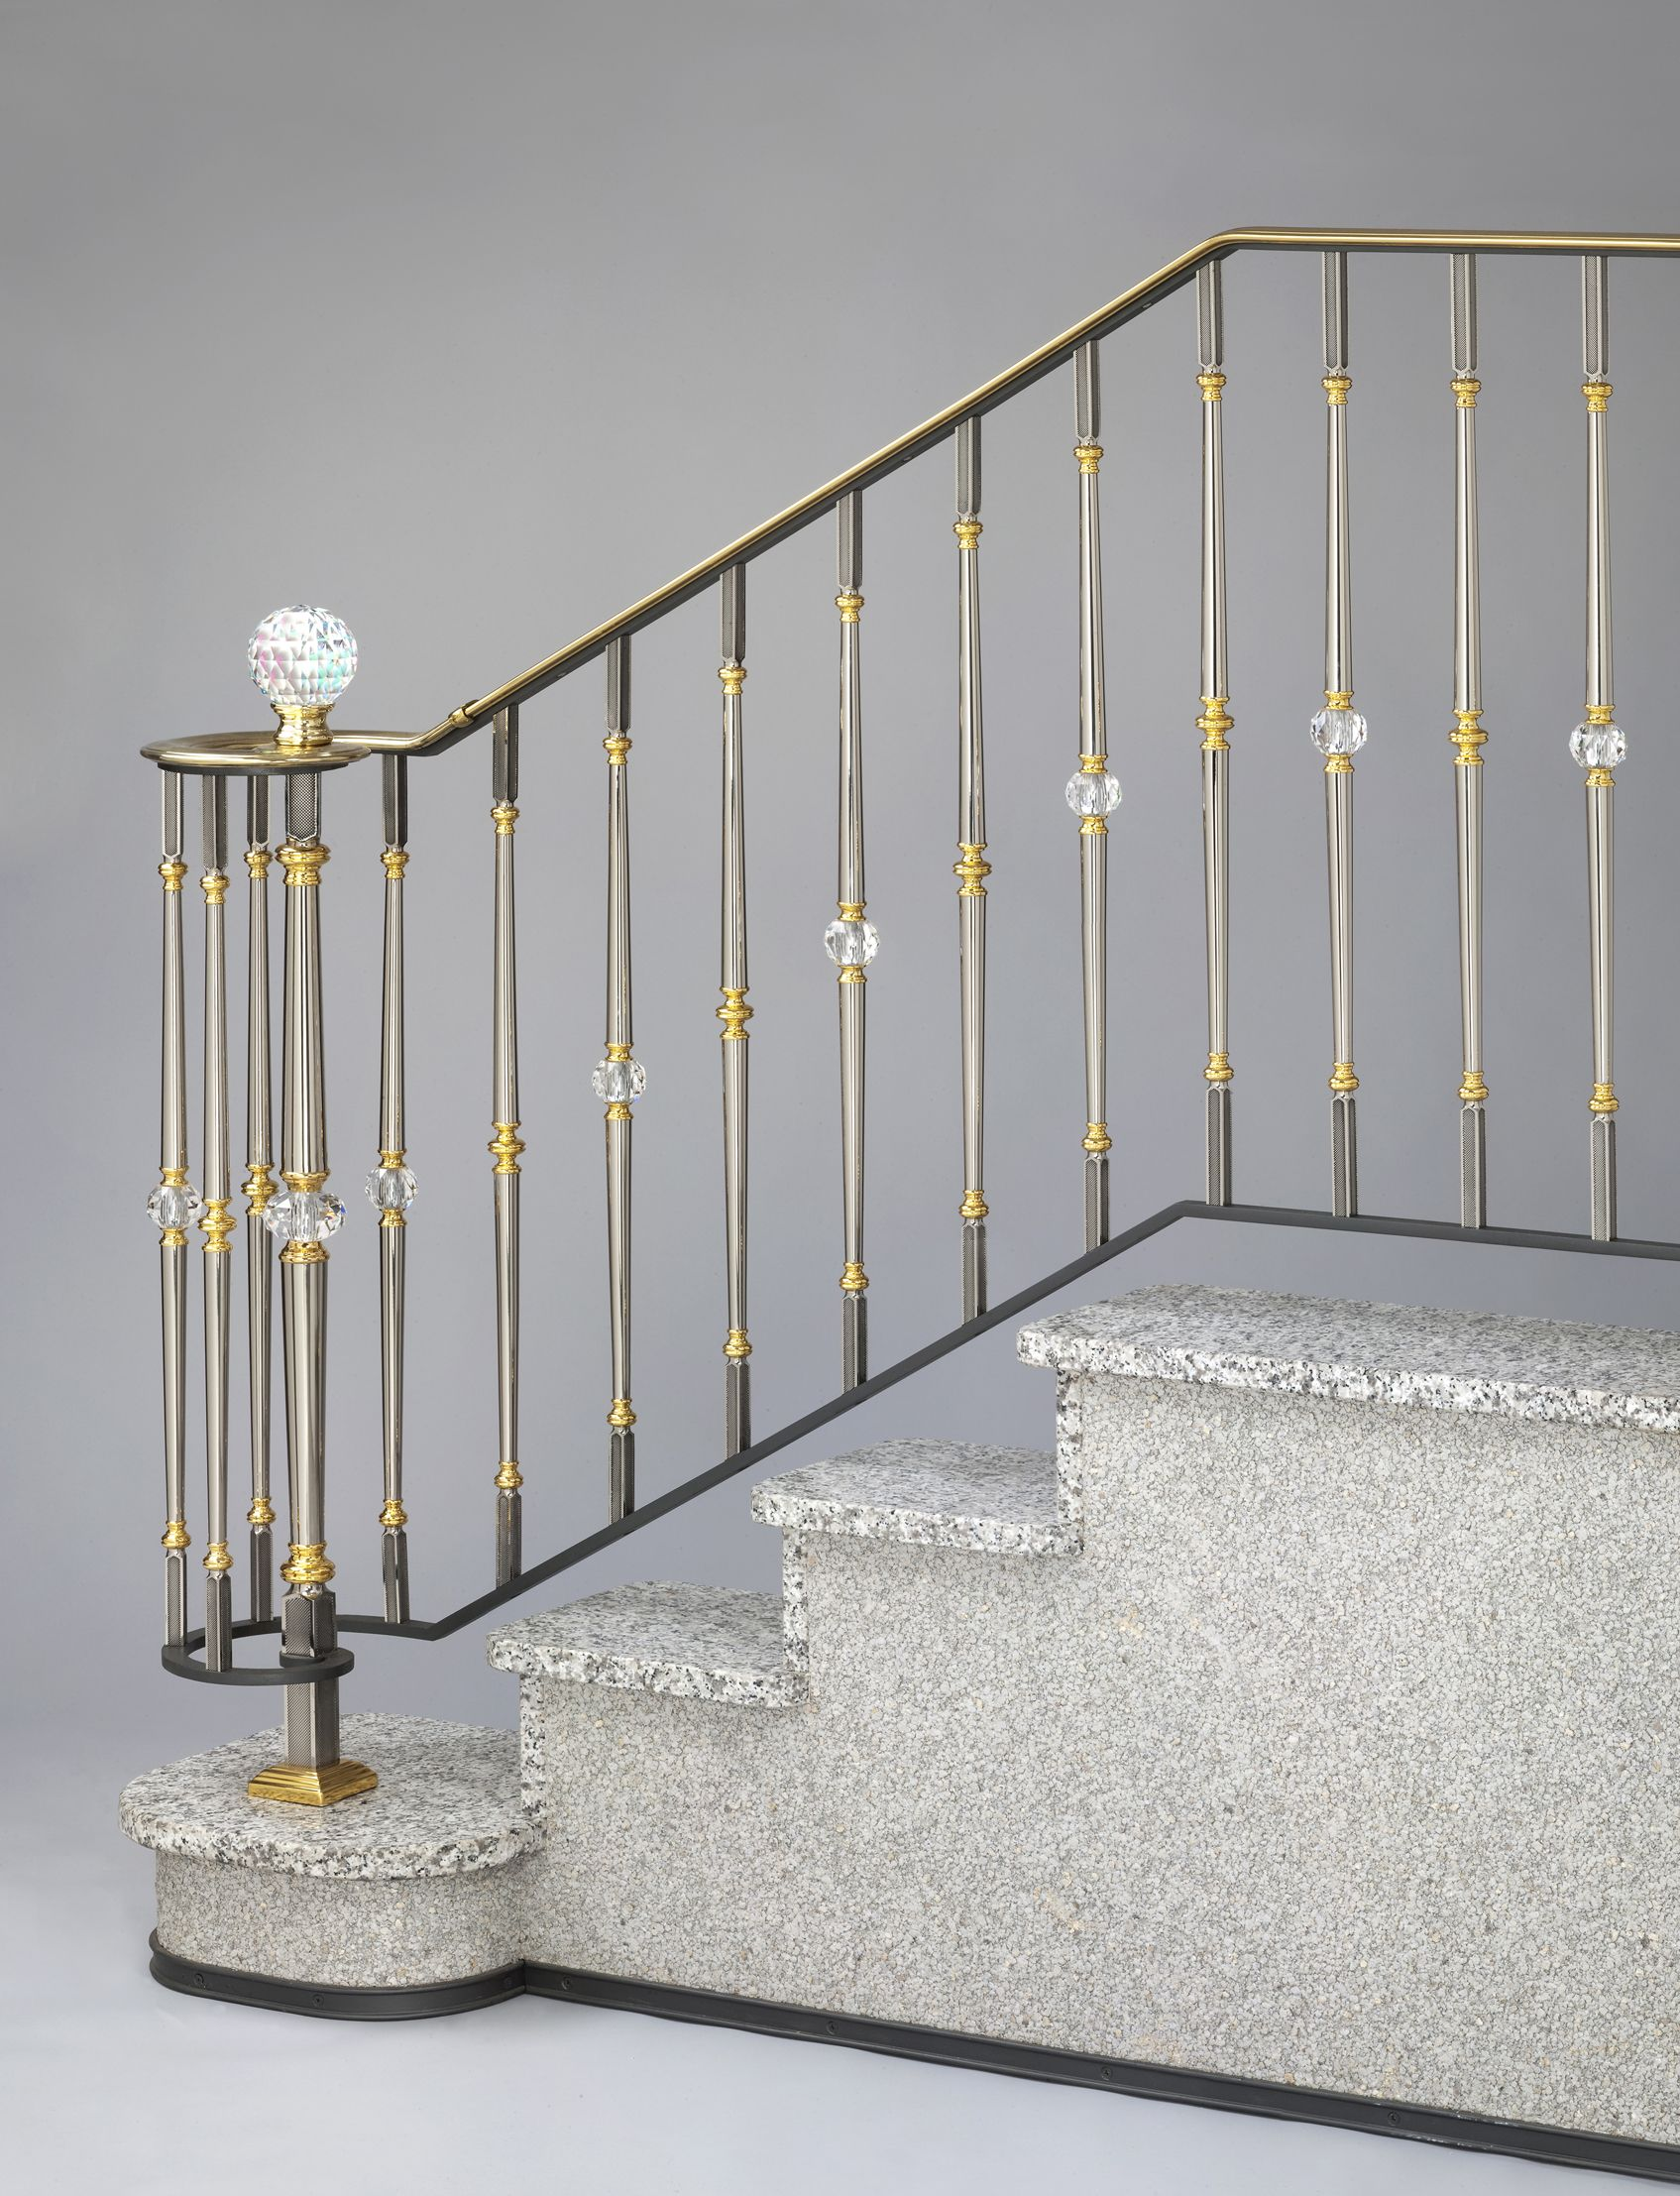 Best Pin By Êtreluxe On Grande Forge French Railings Grills 400 x 300